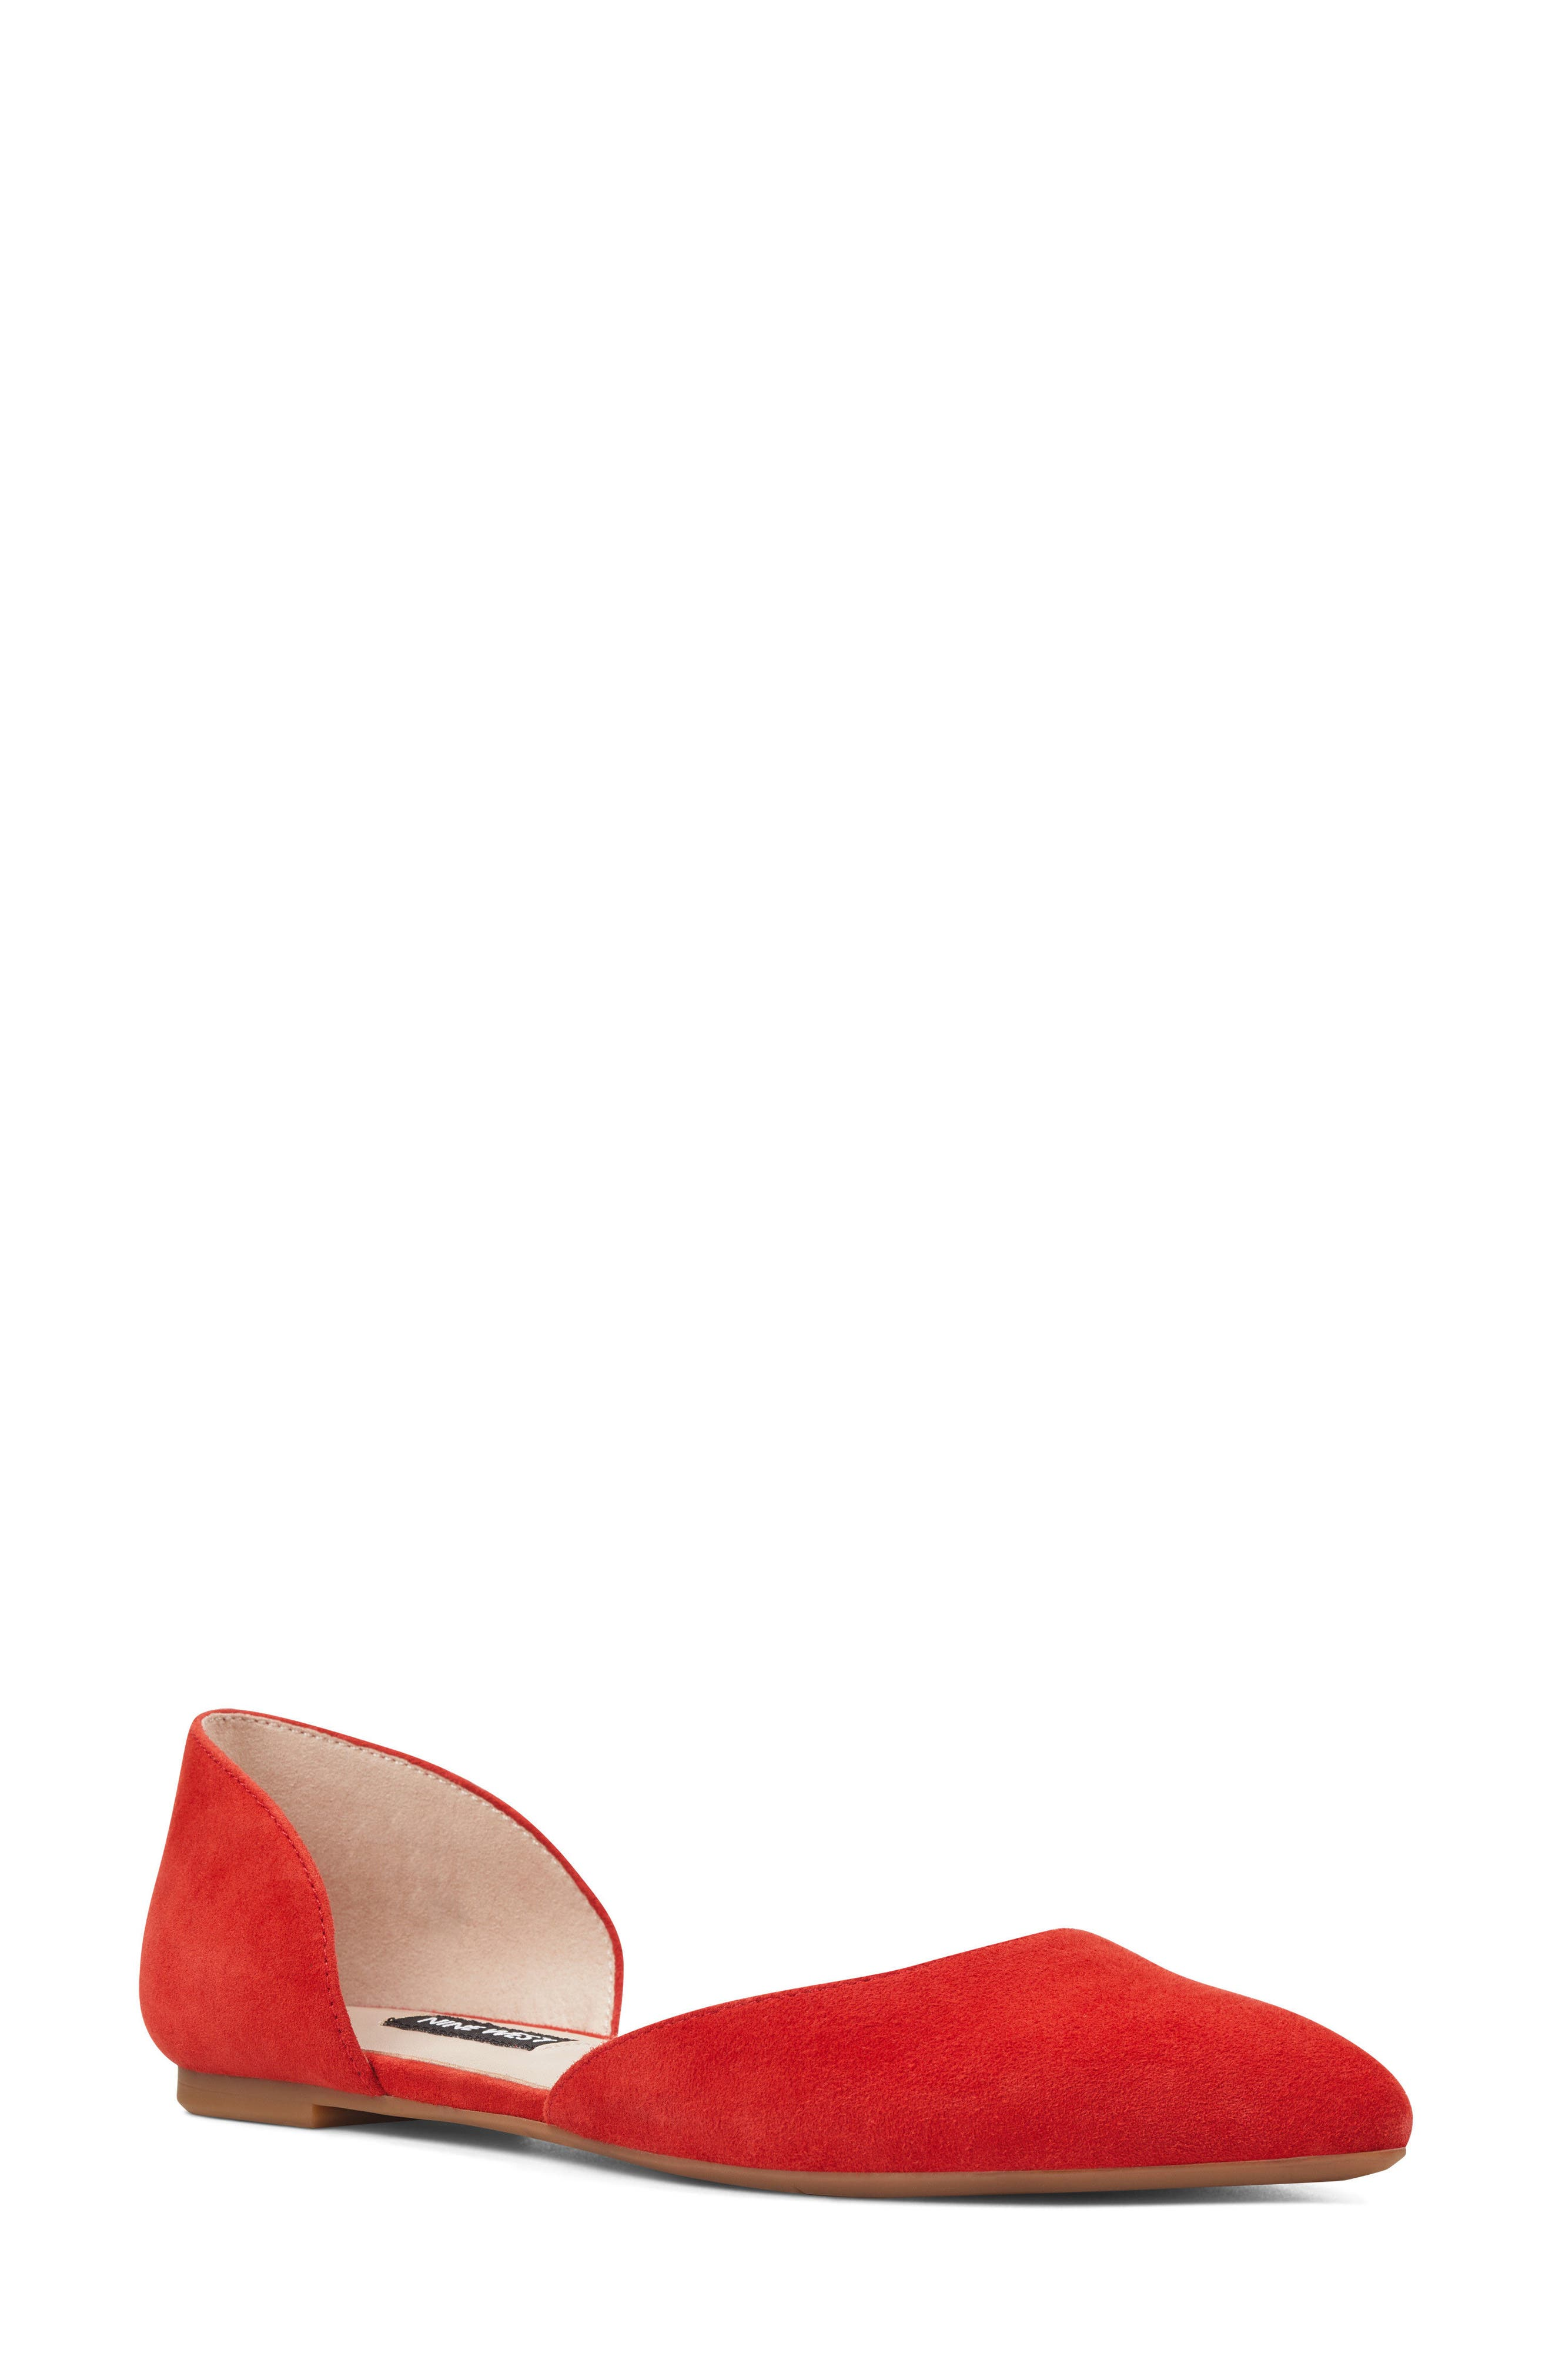 NINE WEST Starship d'Orsay Flat, Main, color, RED SUEDE